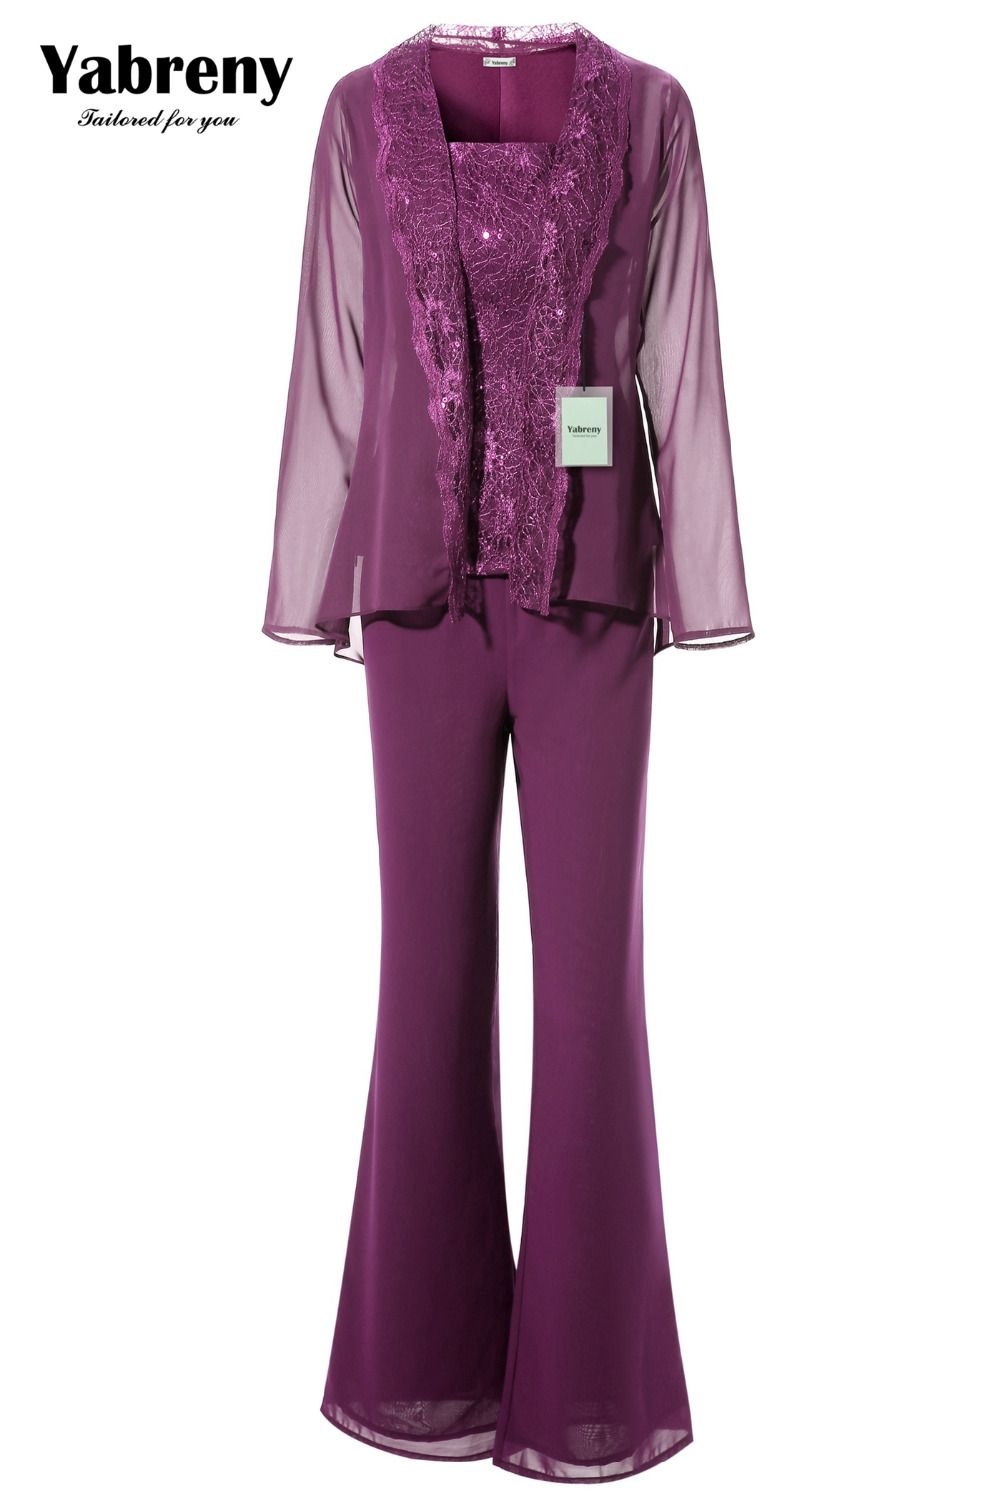 Yabreny Purple Mother of the bride Trousers suit with jacket Elegant ...